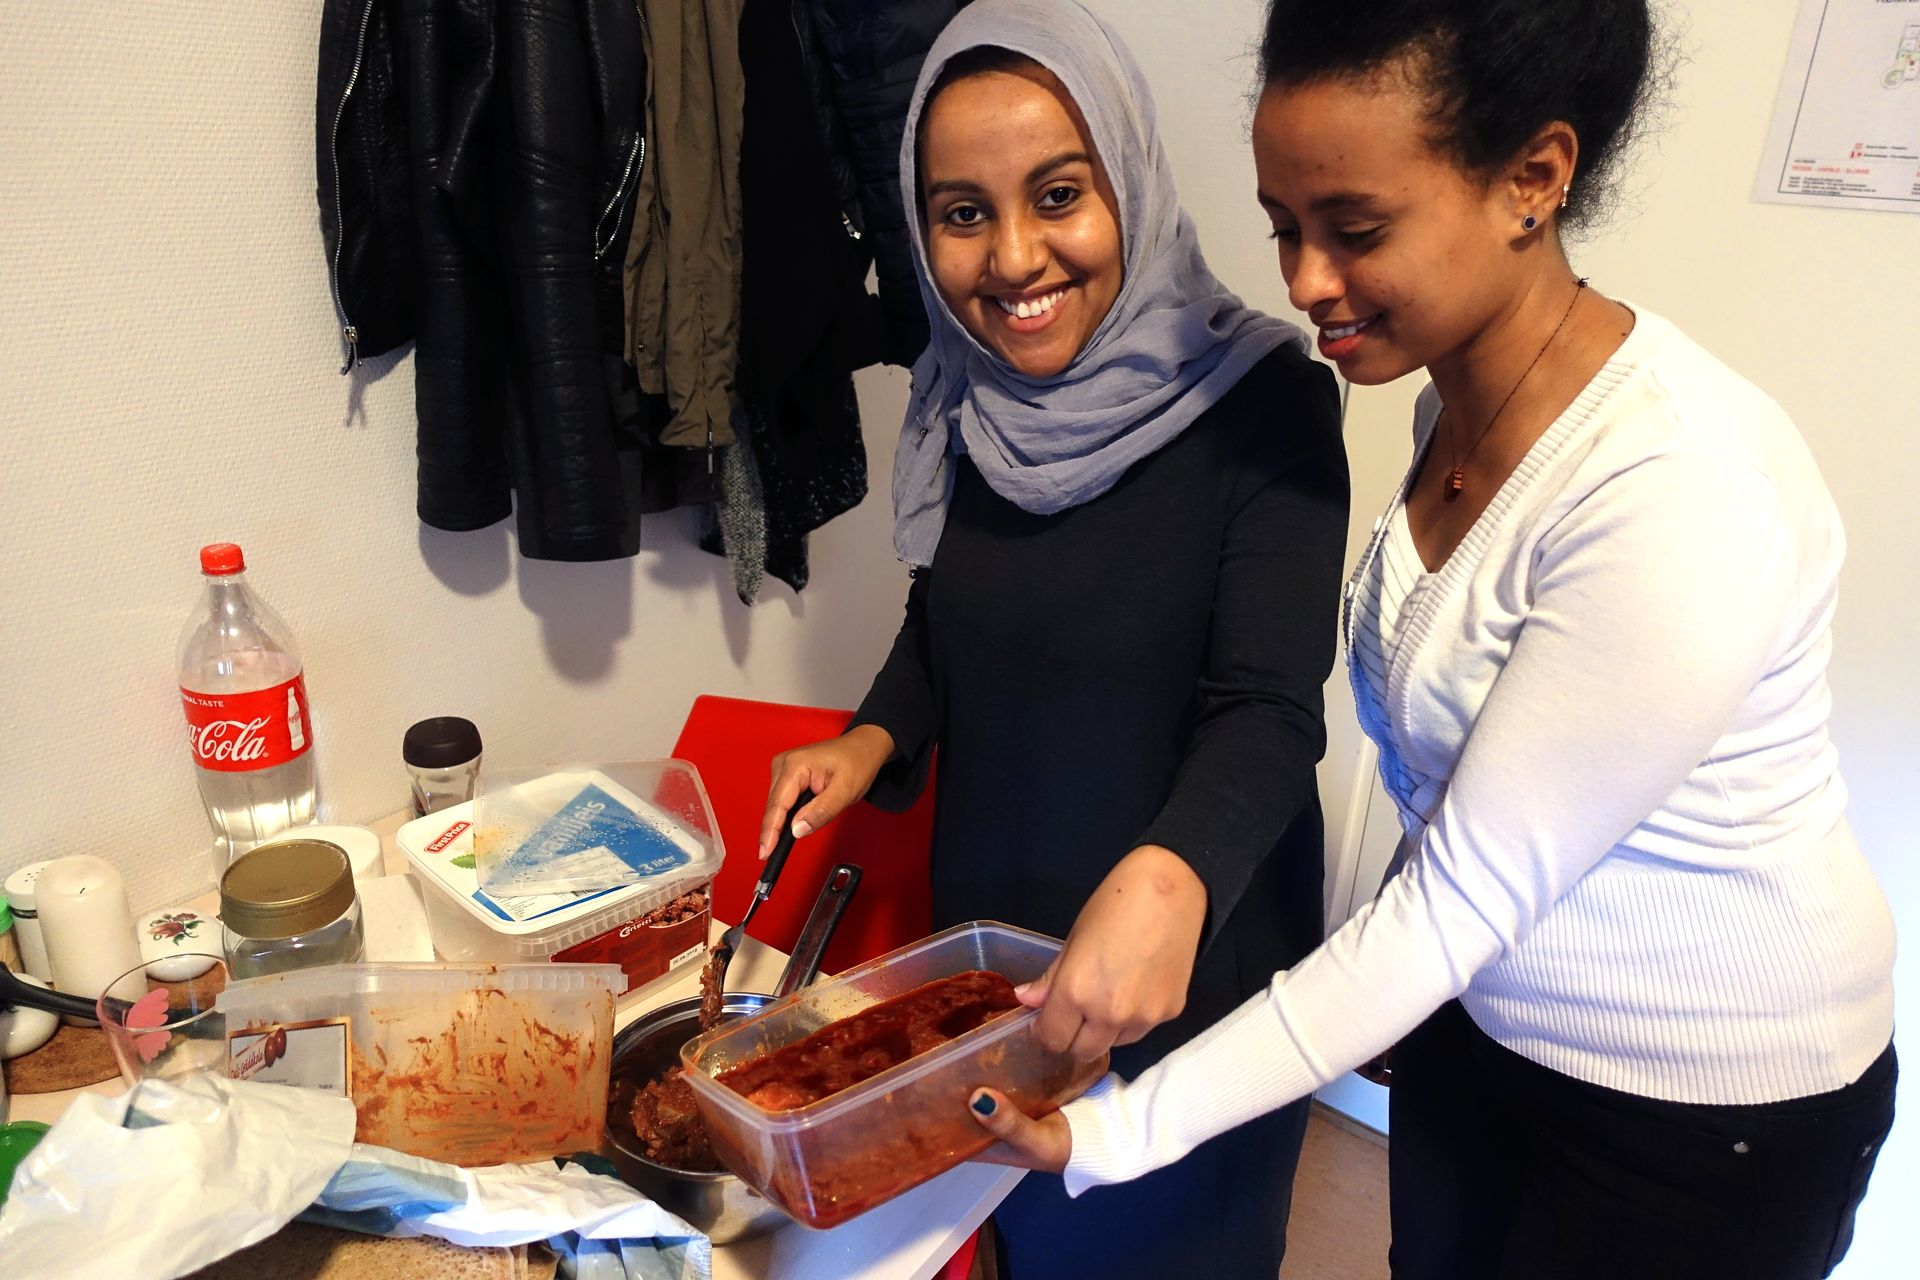 A DAY OF MEAT: Leila Khaled (TV) and Winta Andebrhna are from Eritrea and share rooms at Ila integration reception. Leila has got lamb meat from relatives in the city whom they share for dinner.